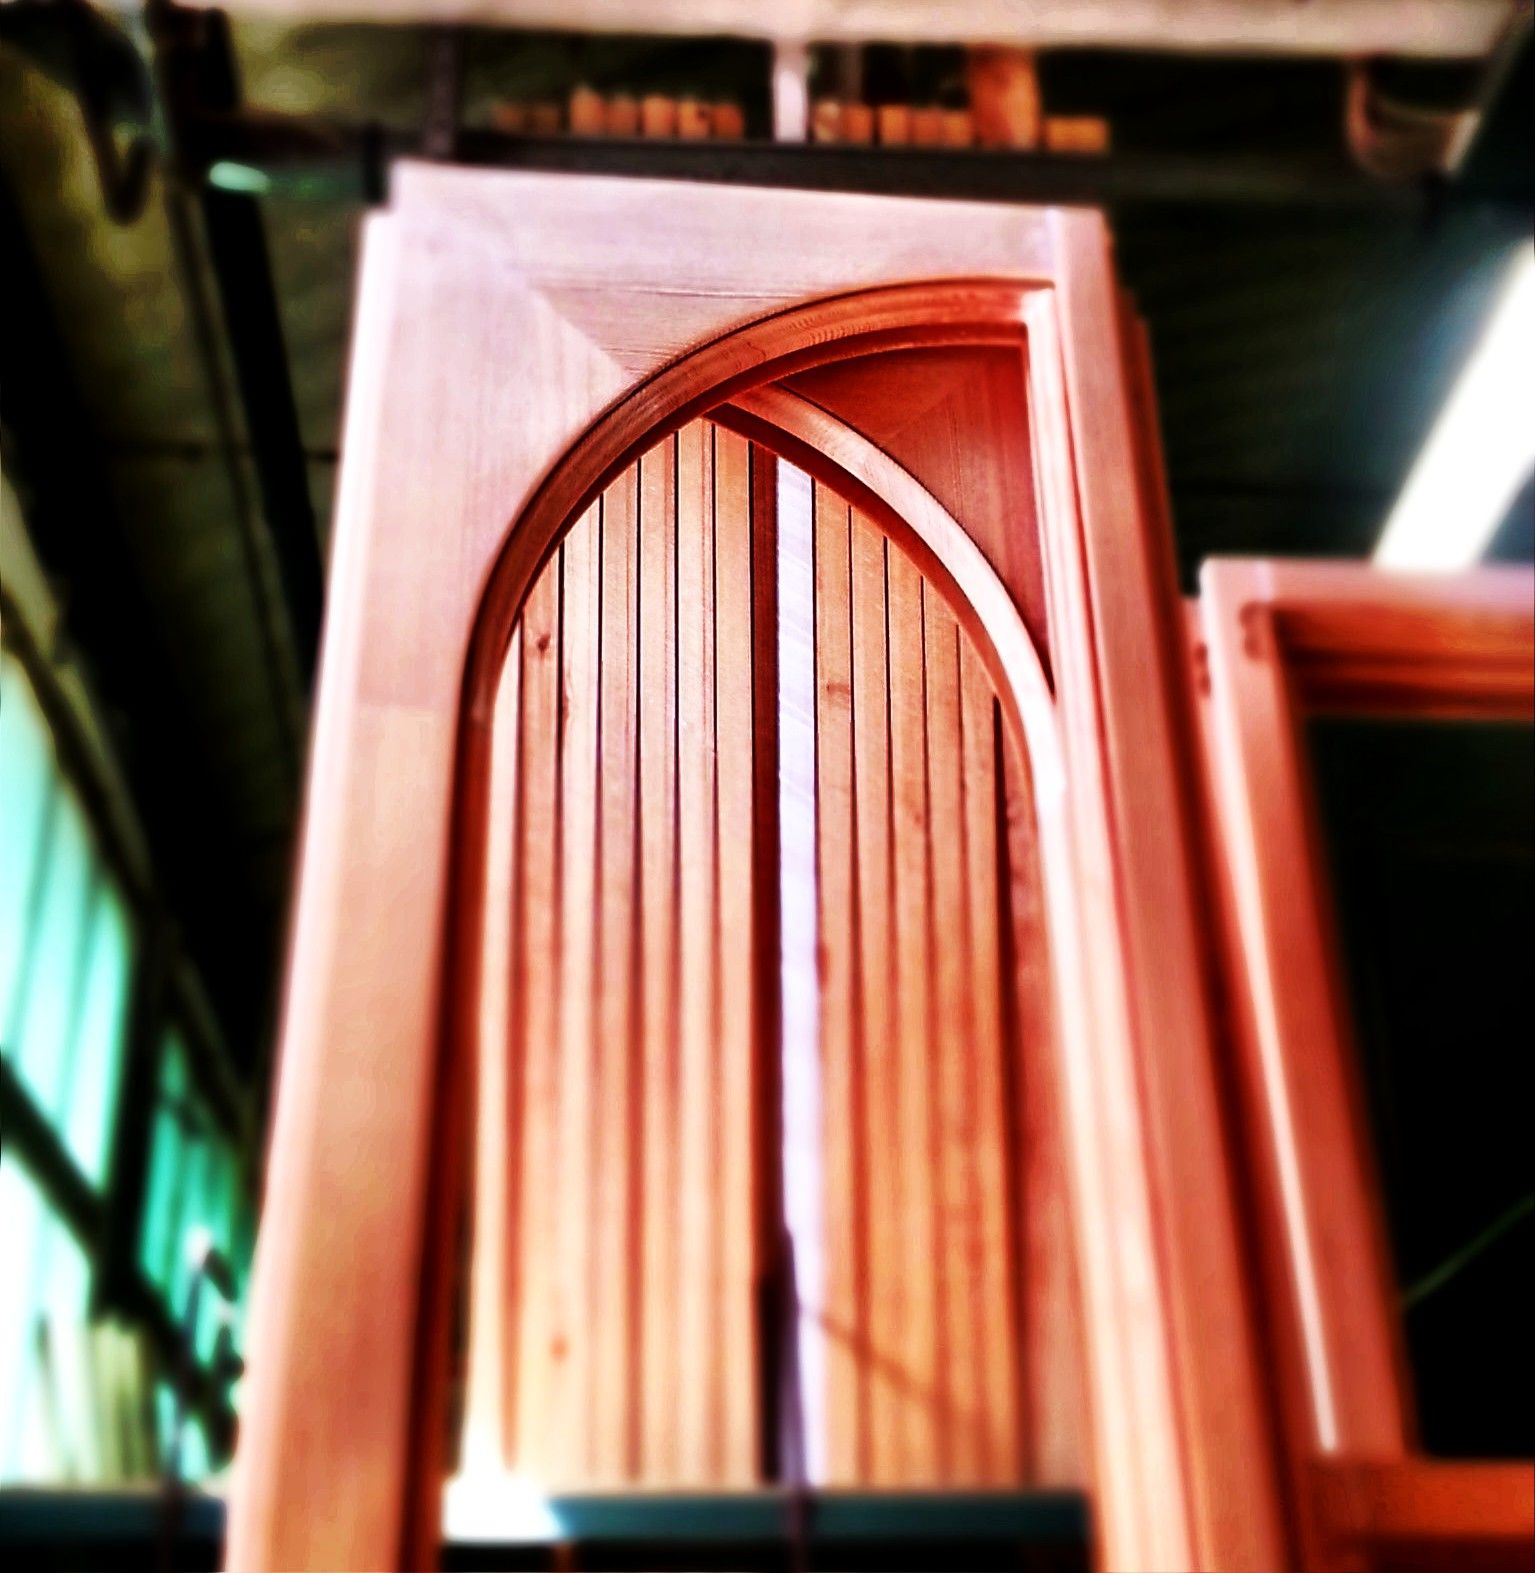 Arched windows ready for paintings!